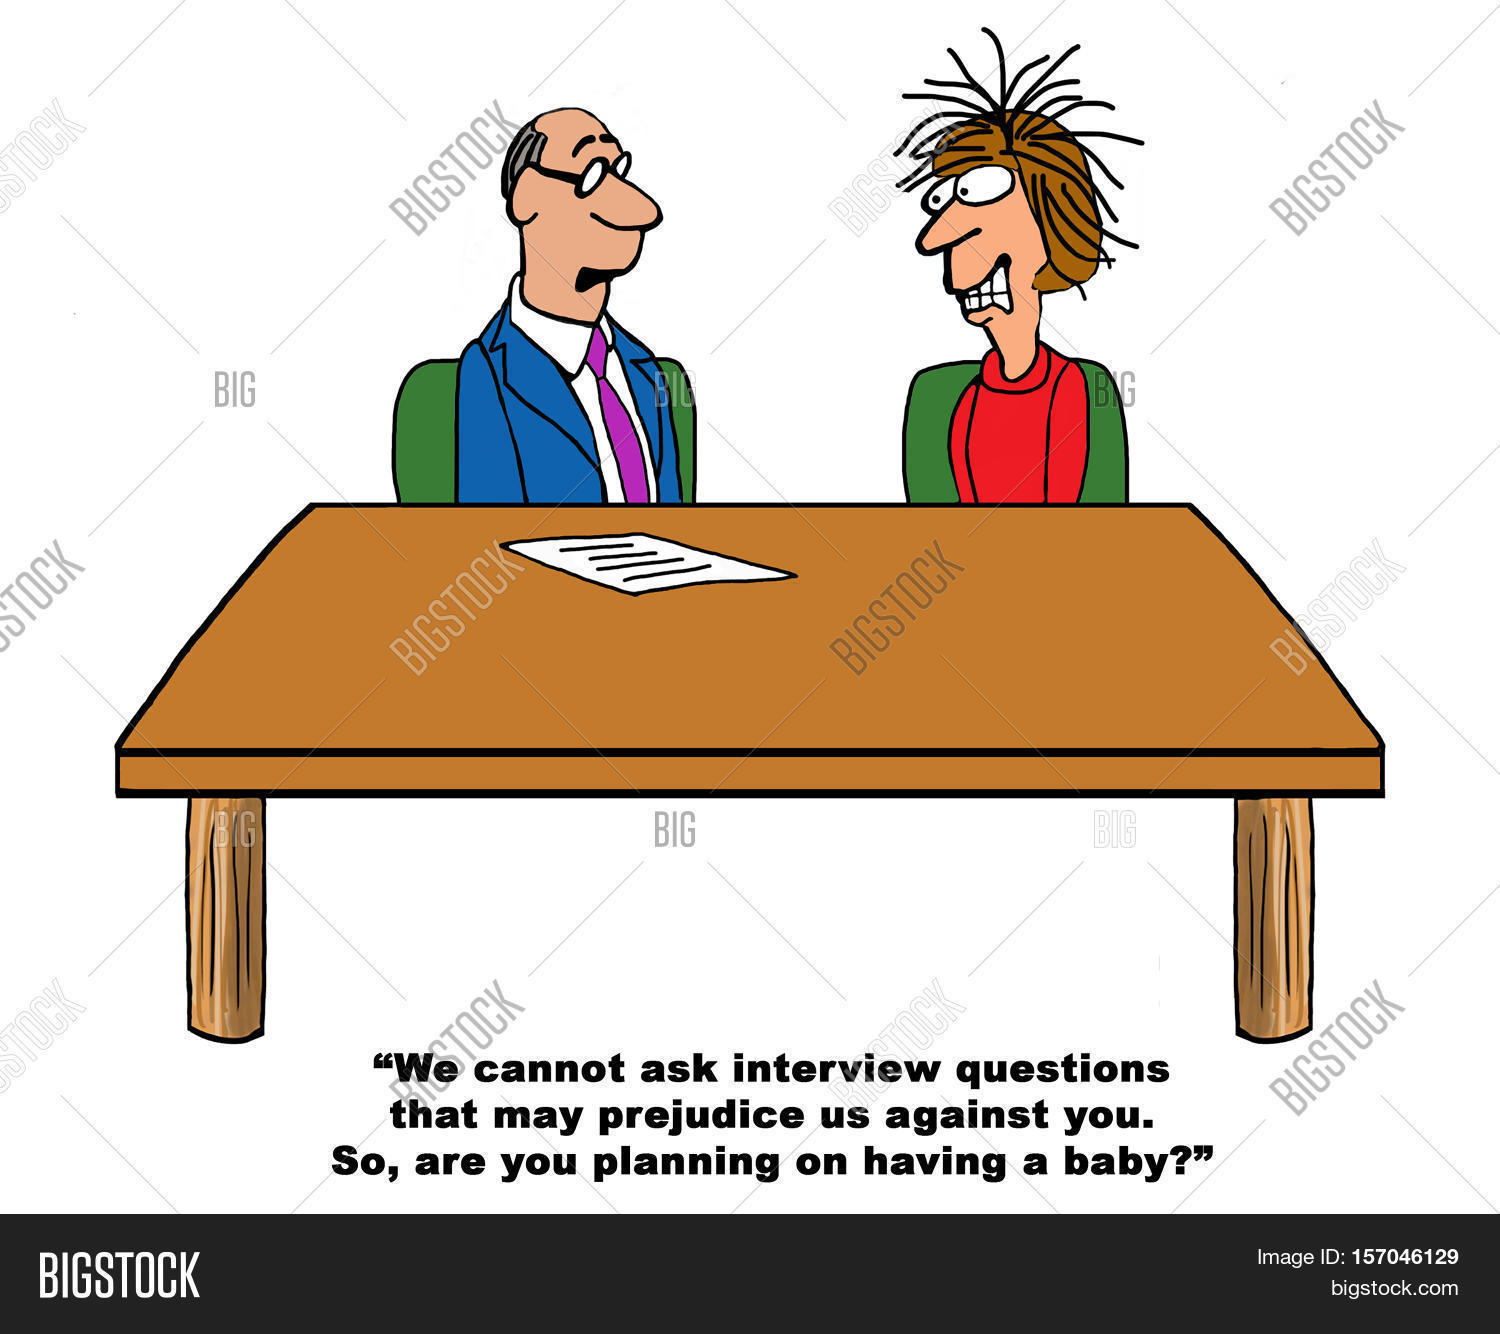 business cartoon about a job recruiter asking illegal questions business cartoon about a job recruiter asking illegal questions during a job interview